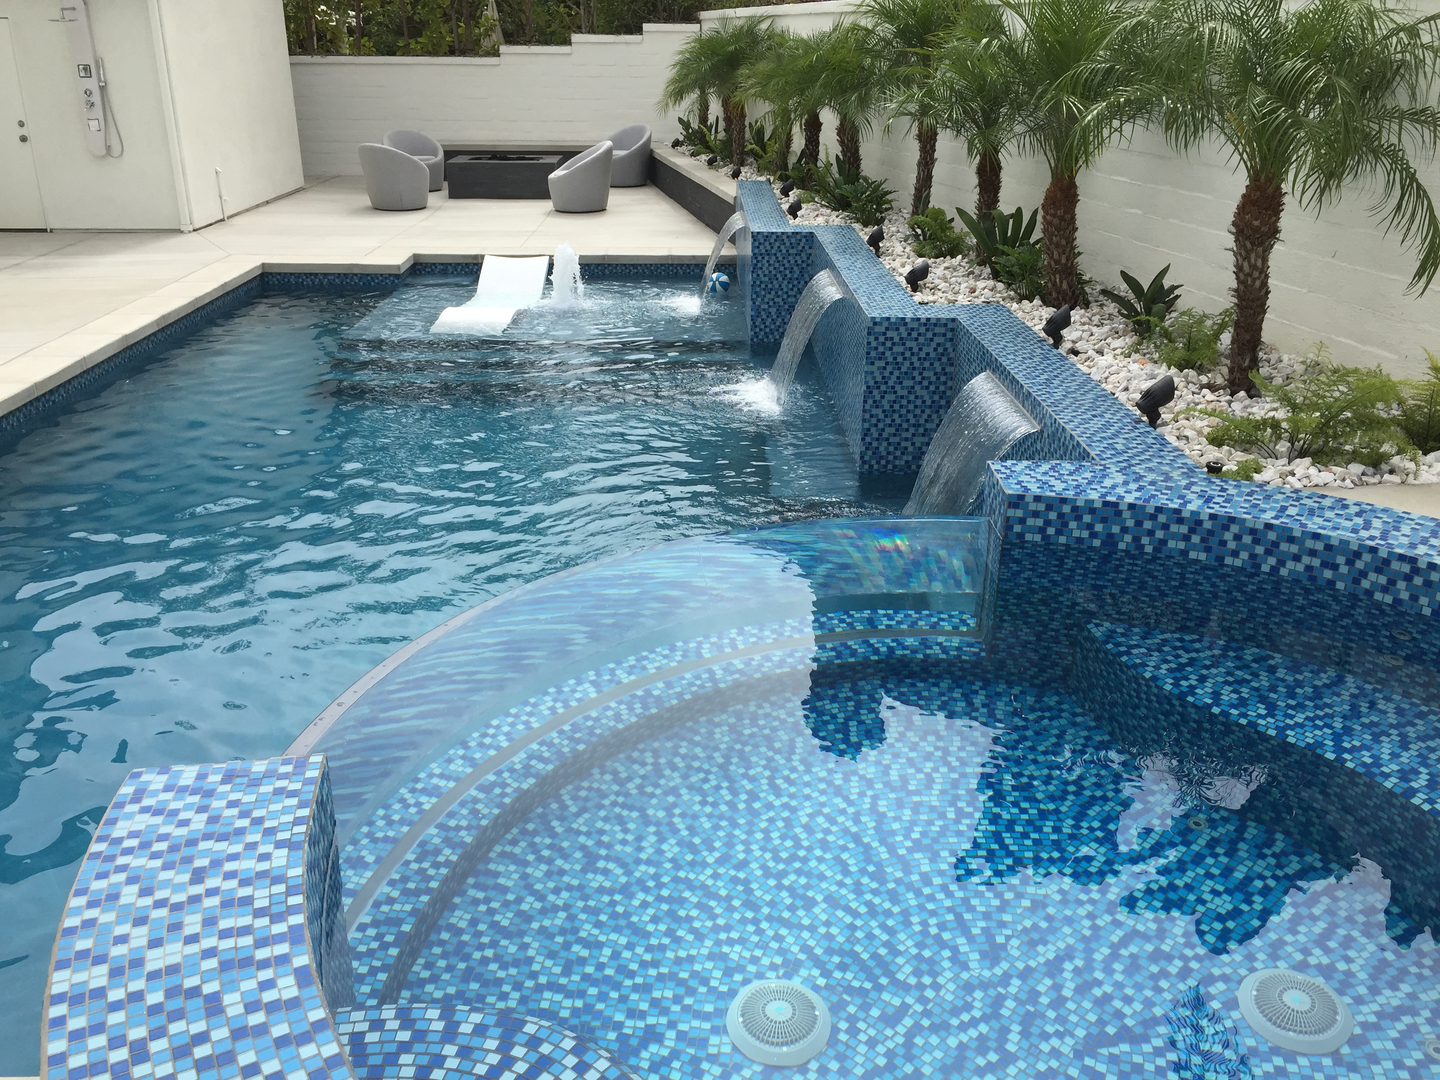 meridian custom pools - swimming pool construction, modern and